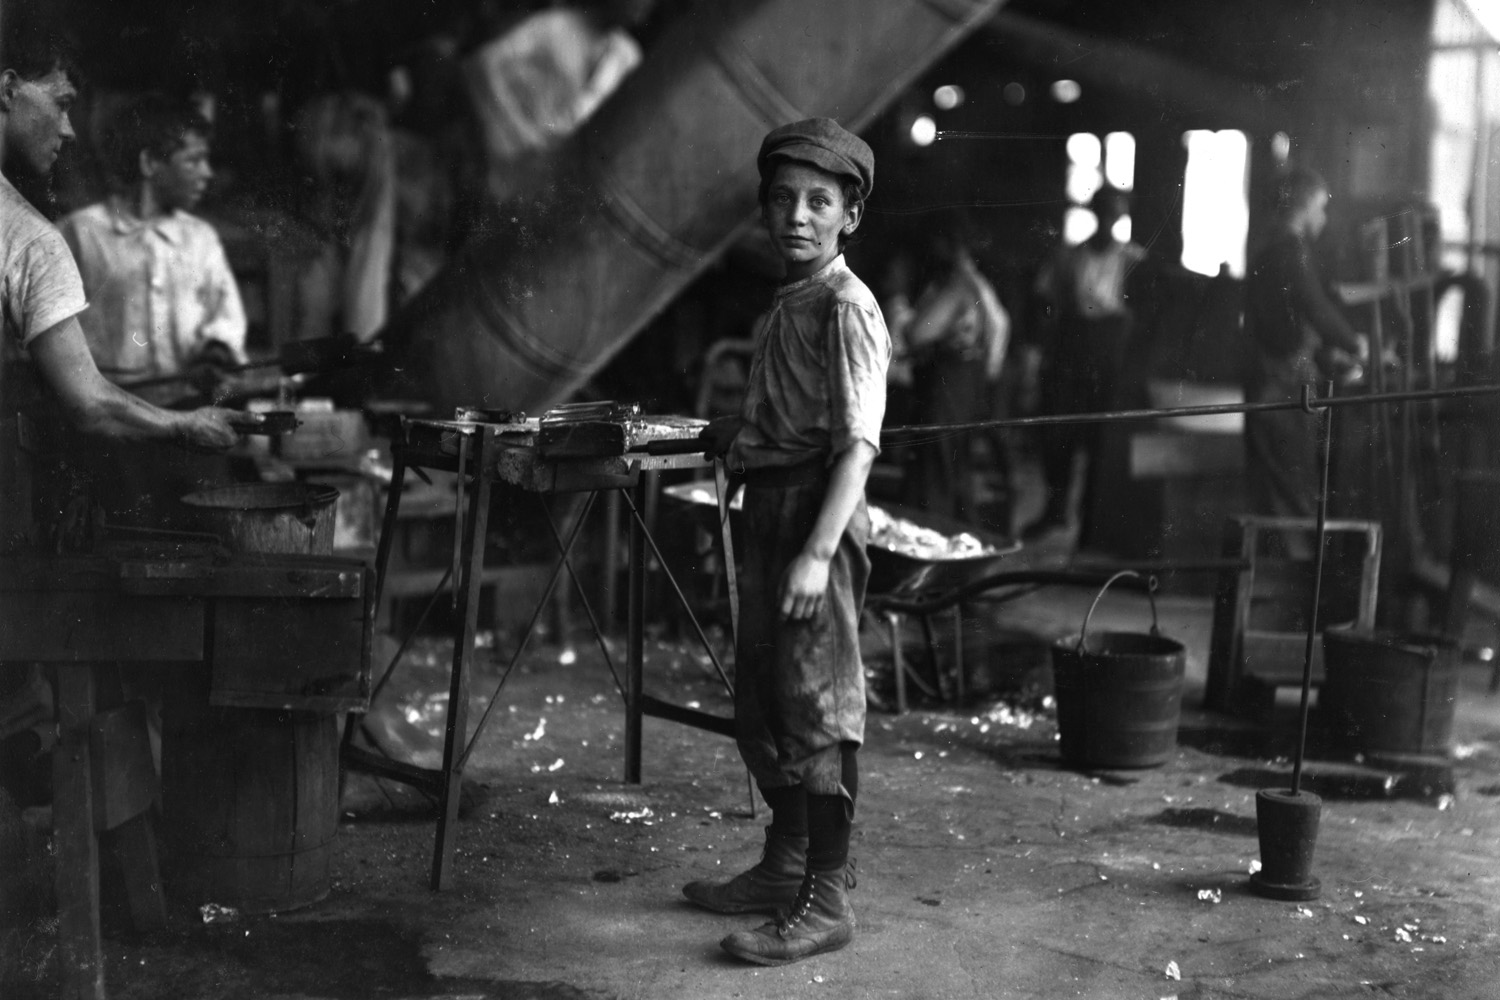 "Each of the following slides contain Manning's field notes on his subjects, whether quotes from their descendents or facts he uncovered about their lives. We've also included Hine's original captions when available. Click on the subject's name to view Manning's full research.Robert Kidd, glass factory worker, 12 years old, Alexandria, Virginia, 1911.                                               'Carrying-in' boy in Alexandria Glass Factory. Works on day shift one week and night shift next week.  —Hine's original caption                                              ""He always had that [sad] expression. I take after him, because everybody tells me I look the same way, sad all the time. He was an alcoholic, but I loved my father. He wasn't mean. He was a good father, other than the sickness he had with alcohol. He was always good to us. I remember one time when I was sick, he brought me some oranges. He loved his children. He was always concerned about us."" —Daughter of Robert Kidd"